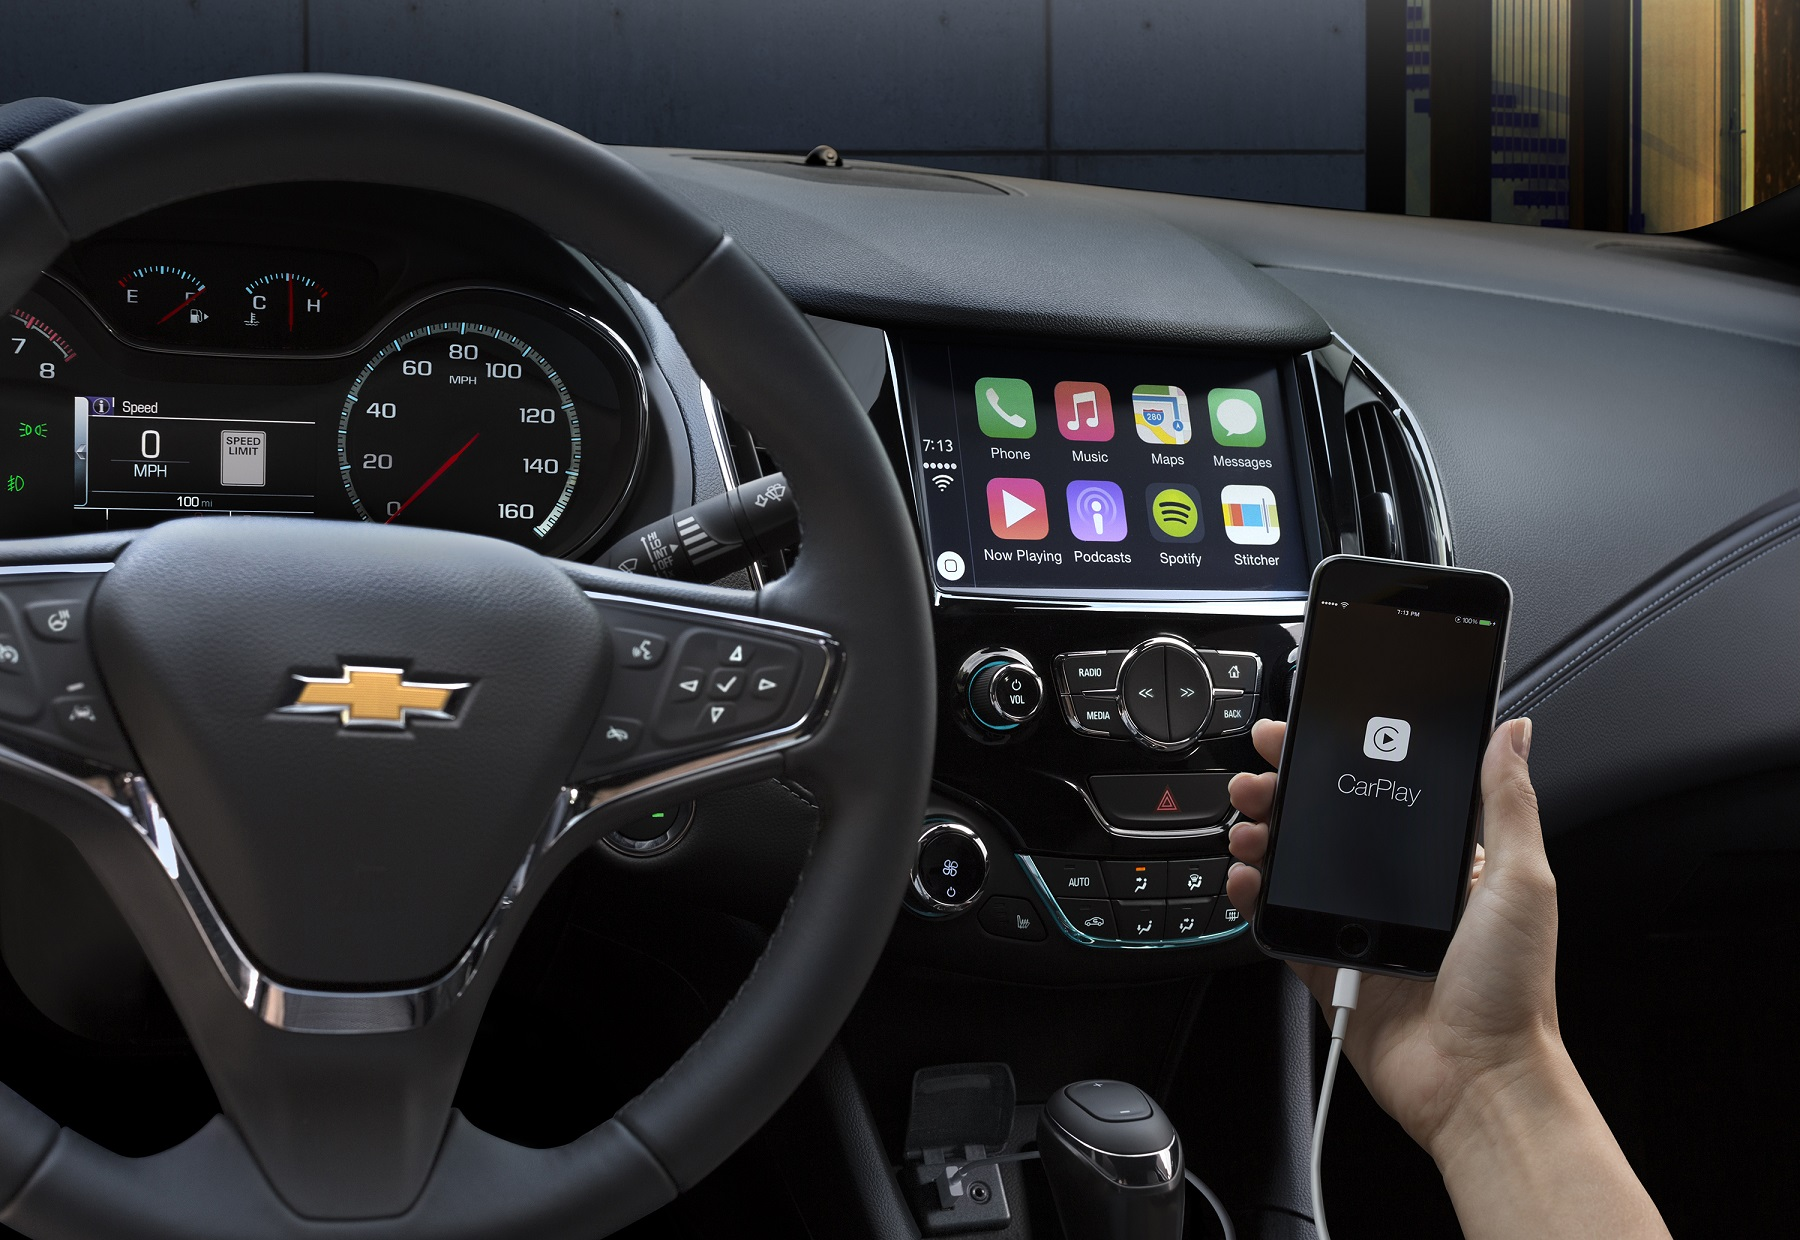 Chevrolet: Apple CarPlay, Android Auto for Everyone - Down the Road